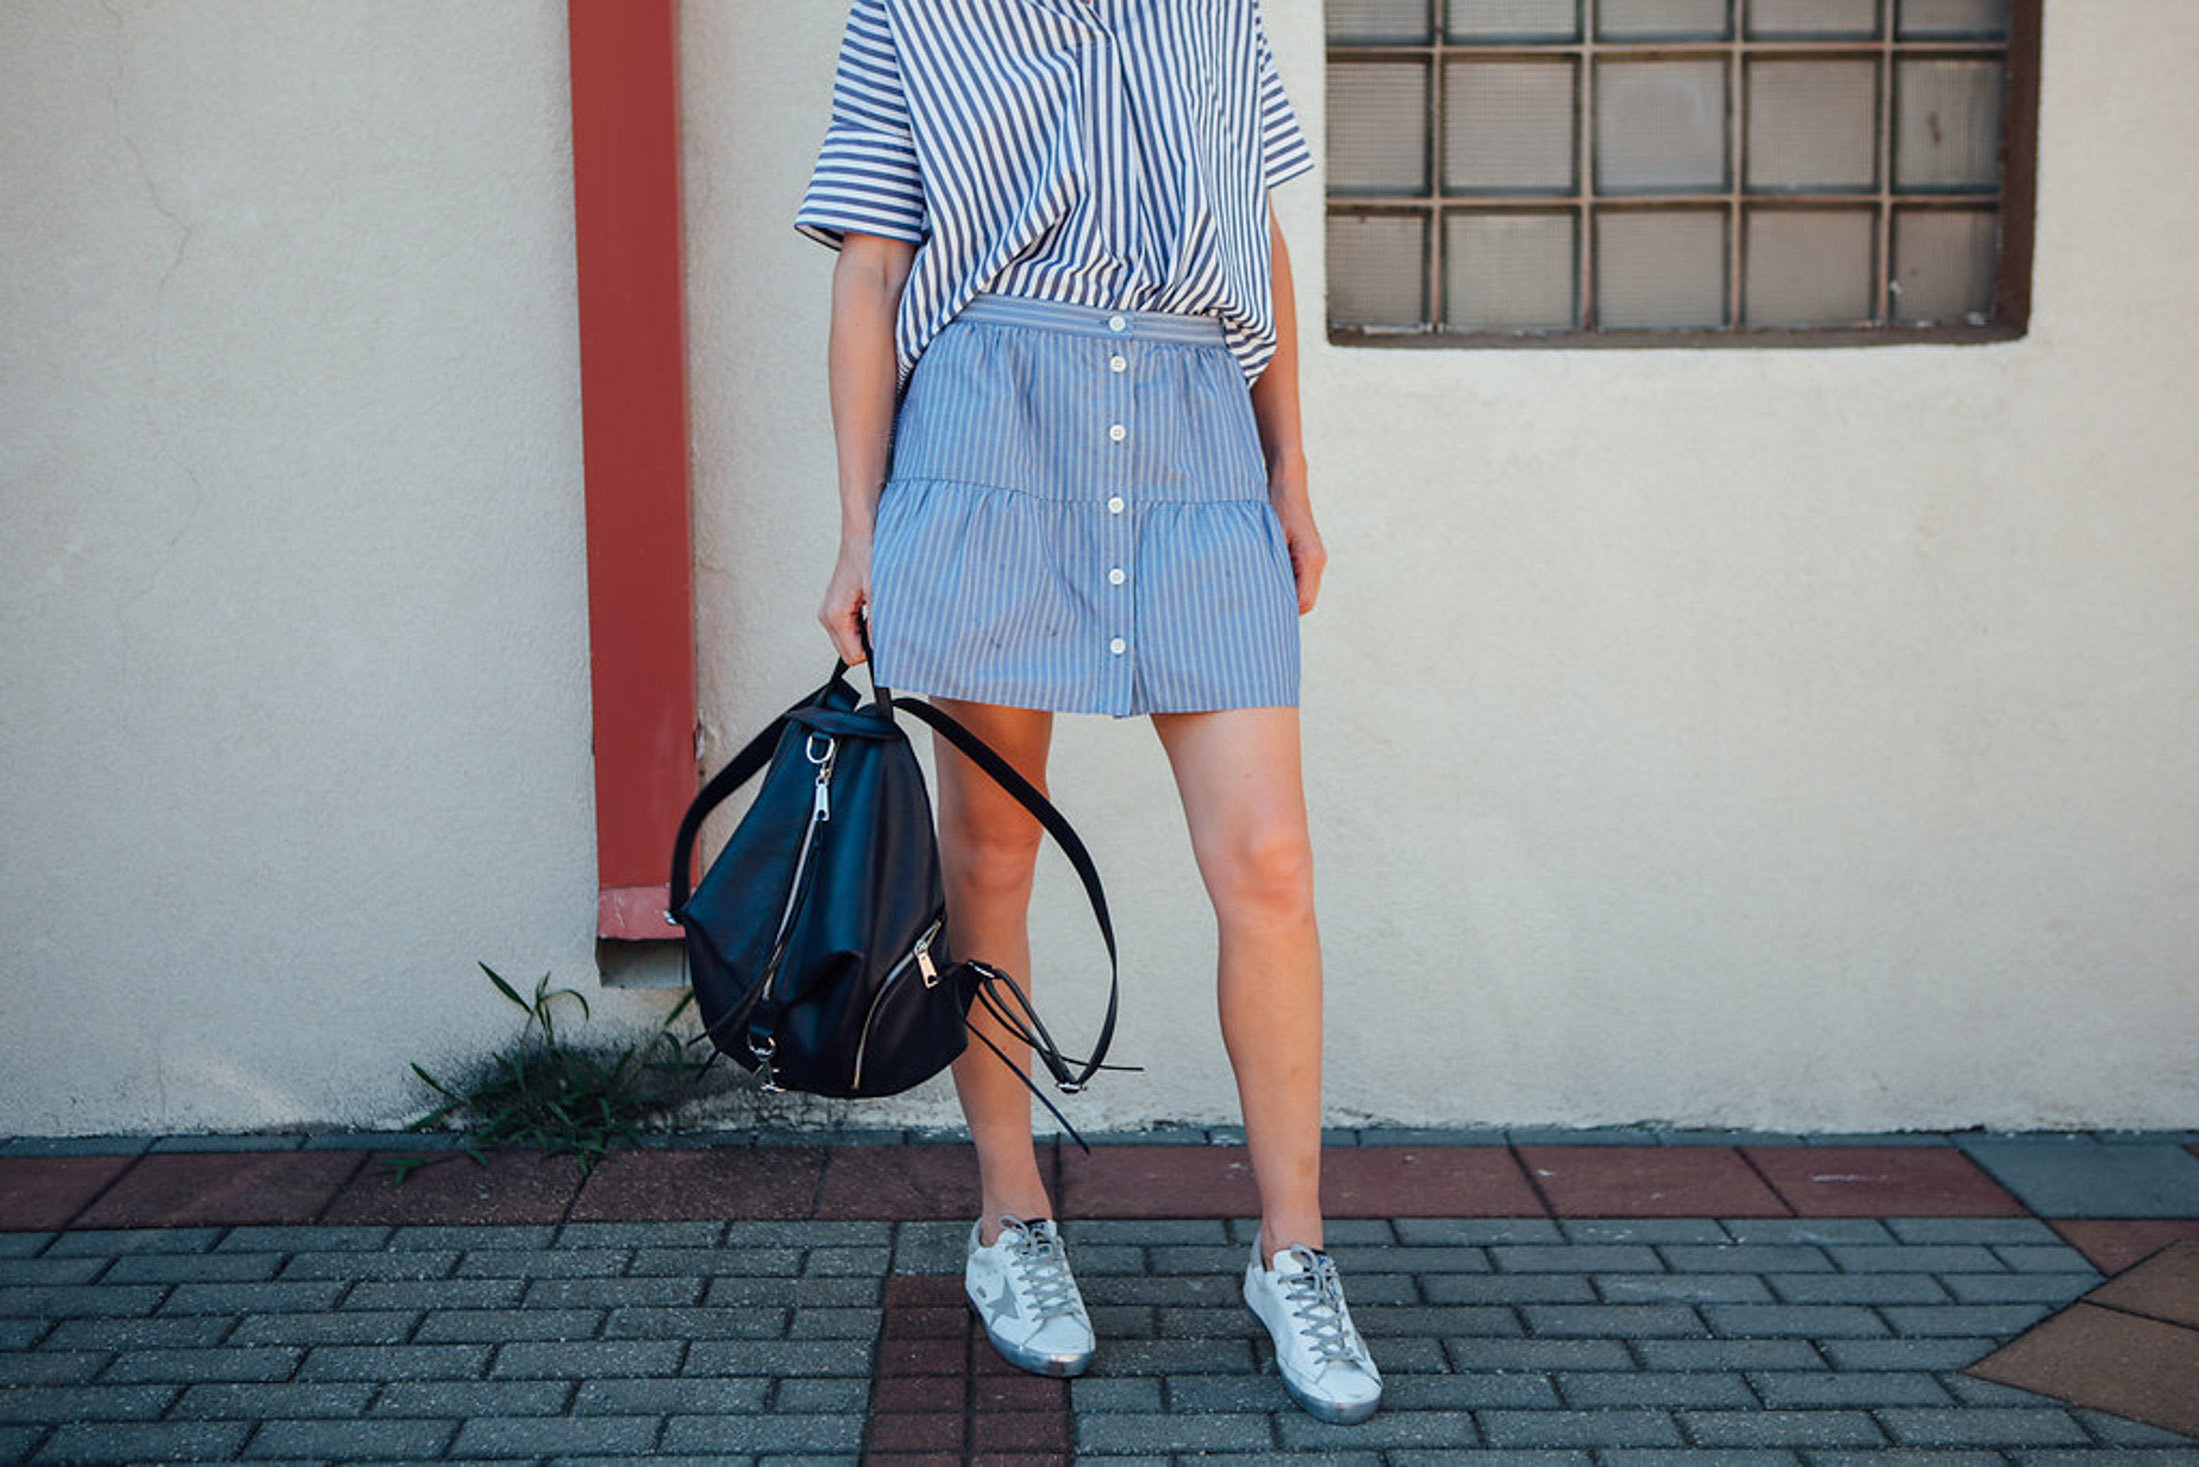 golden goose sneakers outfit (1 of 1)